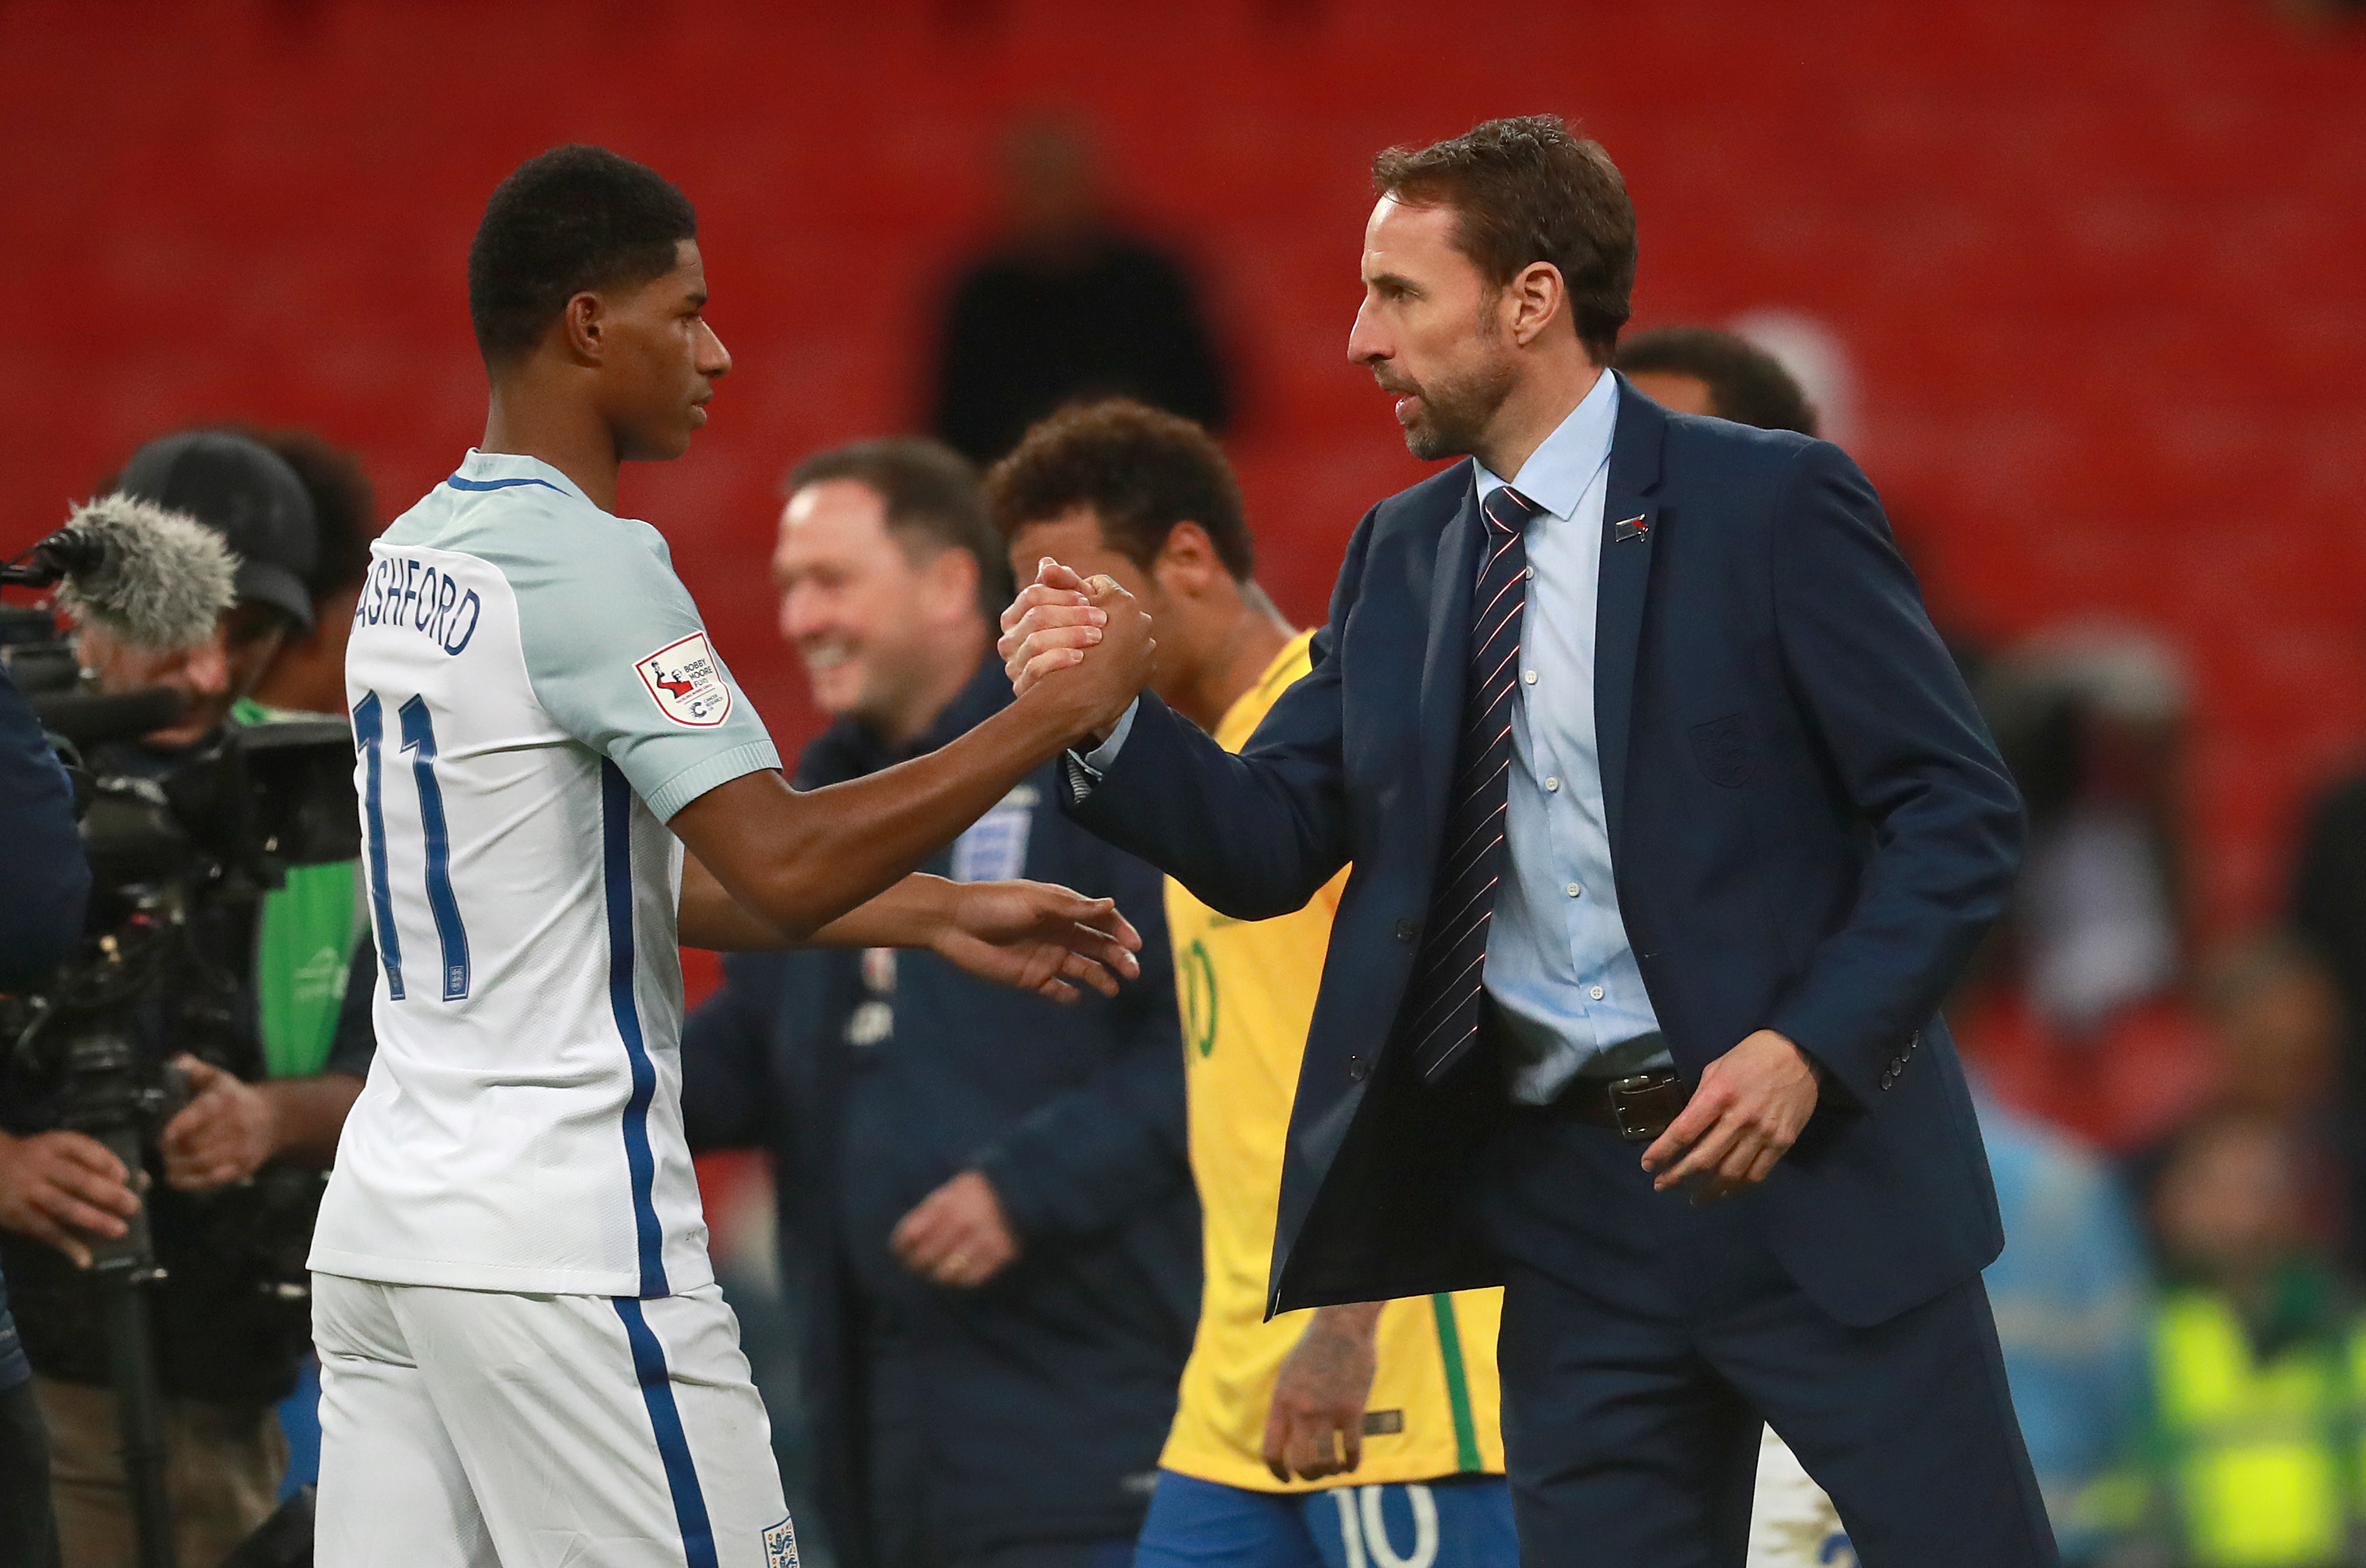 England's Marcus Rashford shakes hands with manager Gareth Southgate